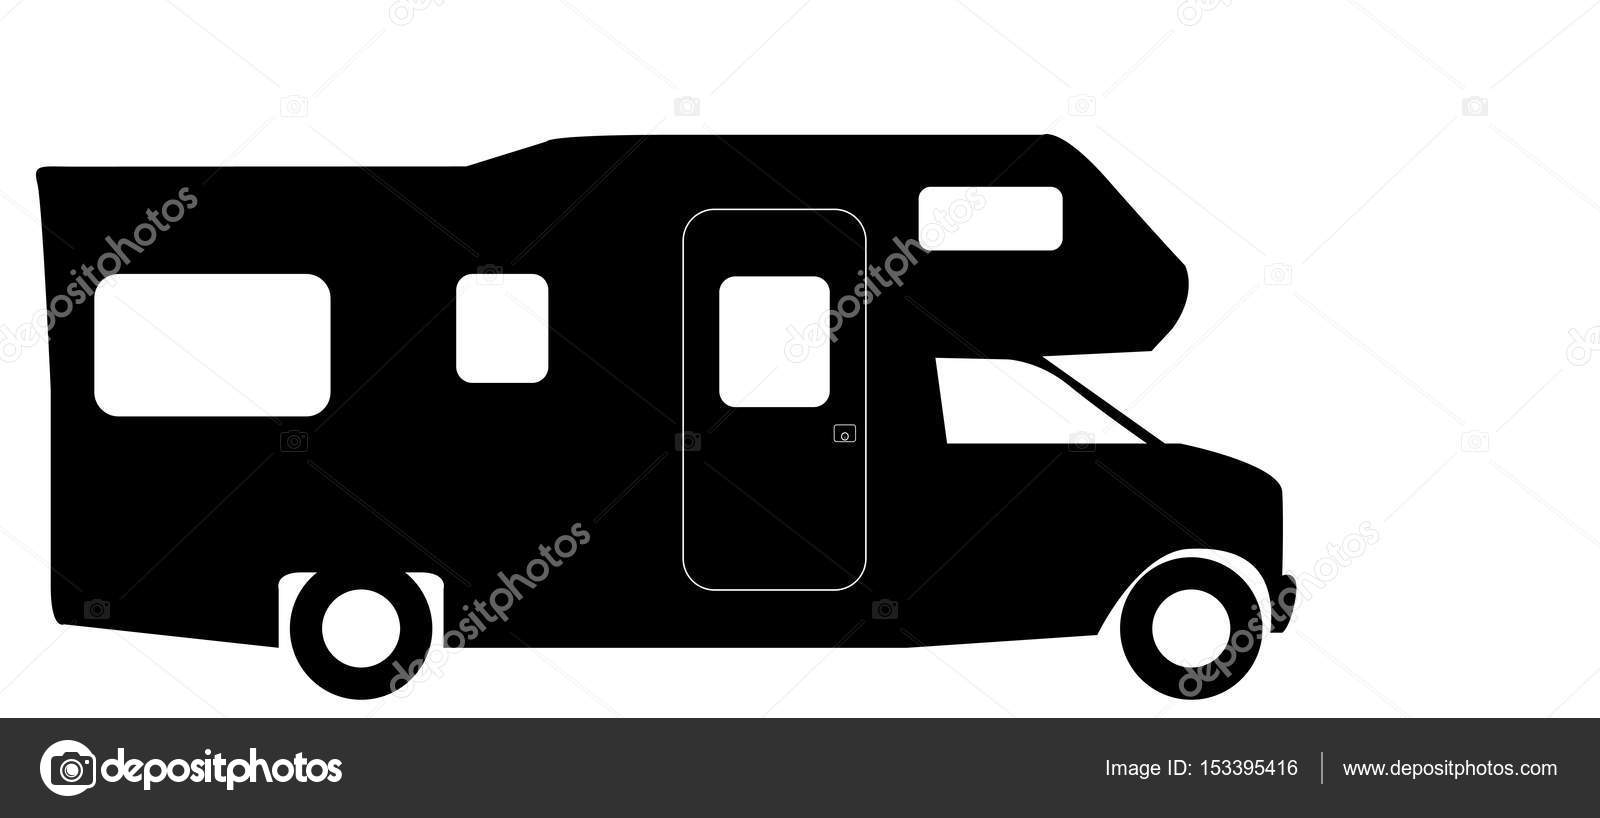 A Retro Rv Camper Van Silhouette Isolated On White Background Vector By Davidscar